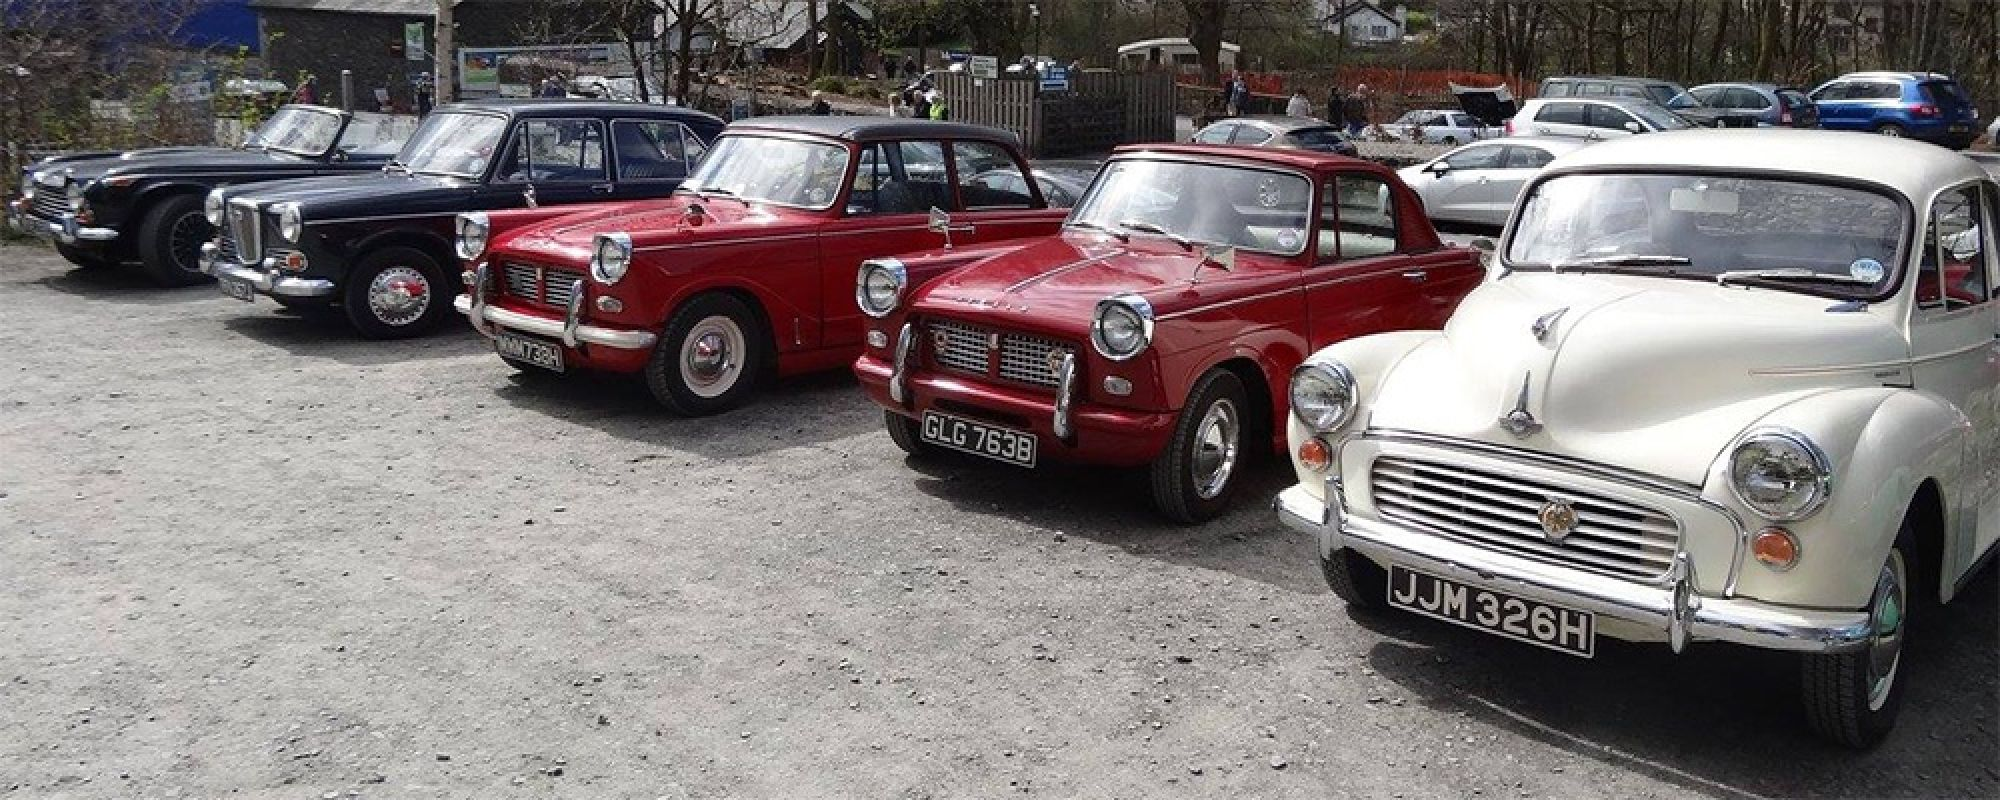 Classic cars attending a previous 'Classic Drive & Ride in Day' at the museum